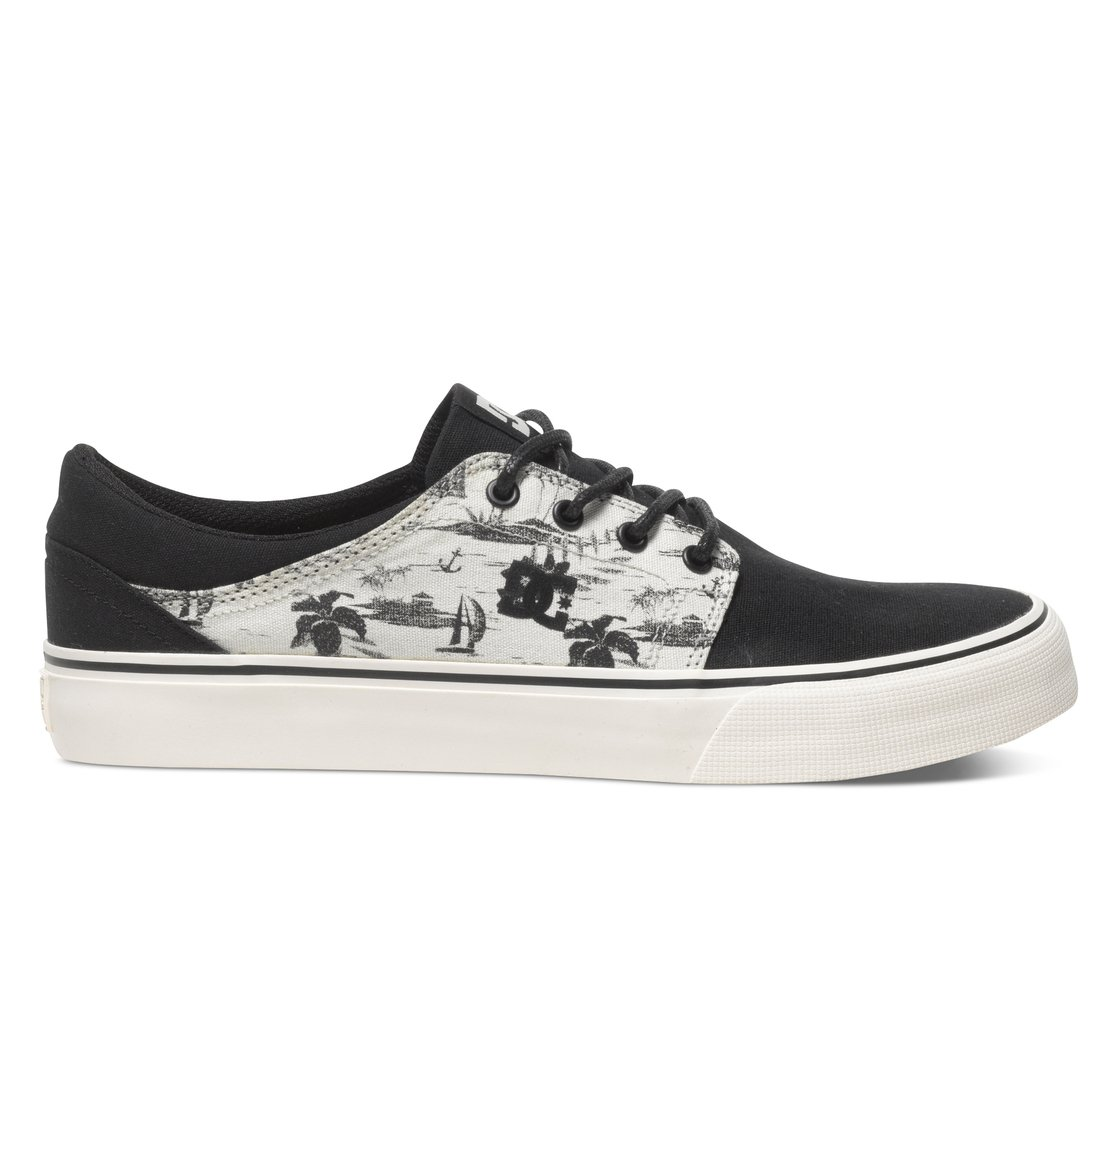 Trase LX - Chaussures - Noir - DC Shoes